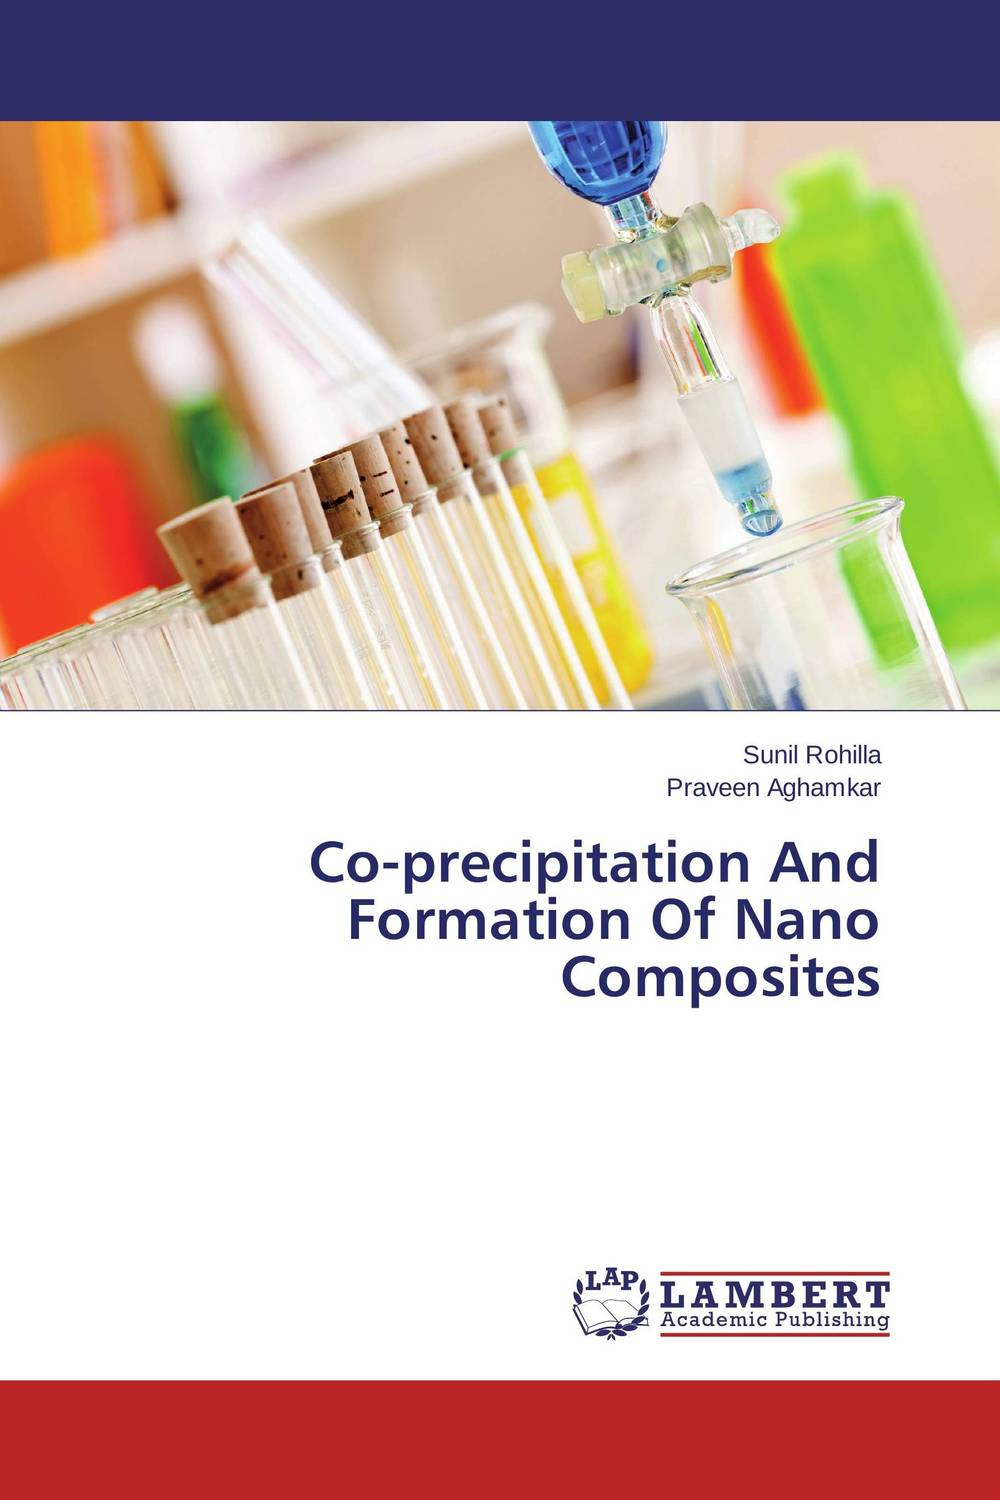 Co-precipitation And Formation Of Nano Composites identification processes of articulation and phonemic disorders